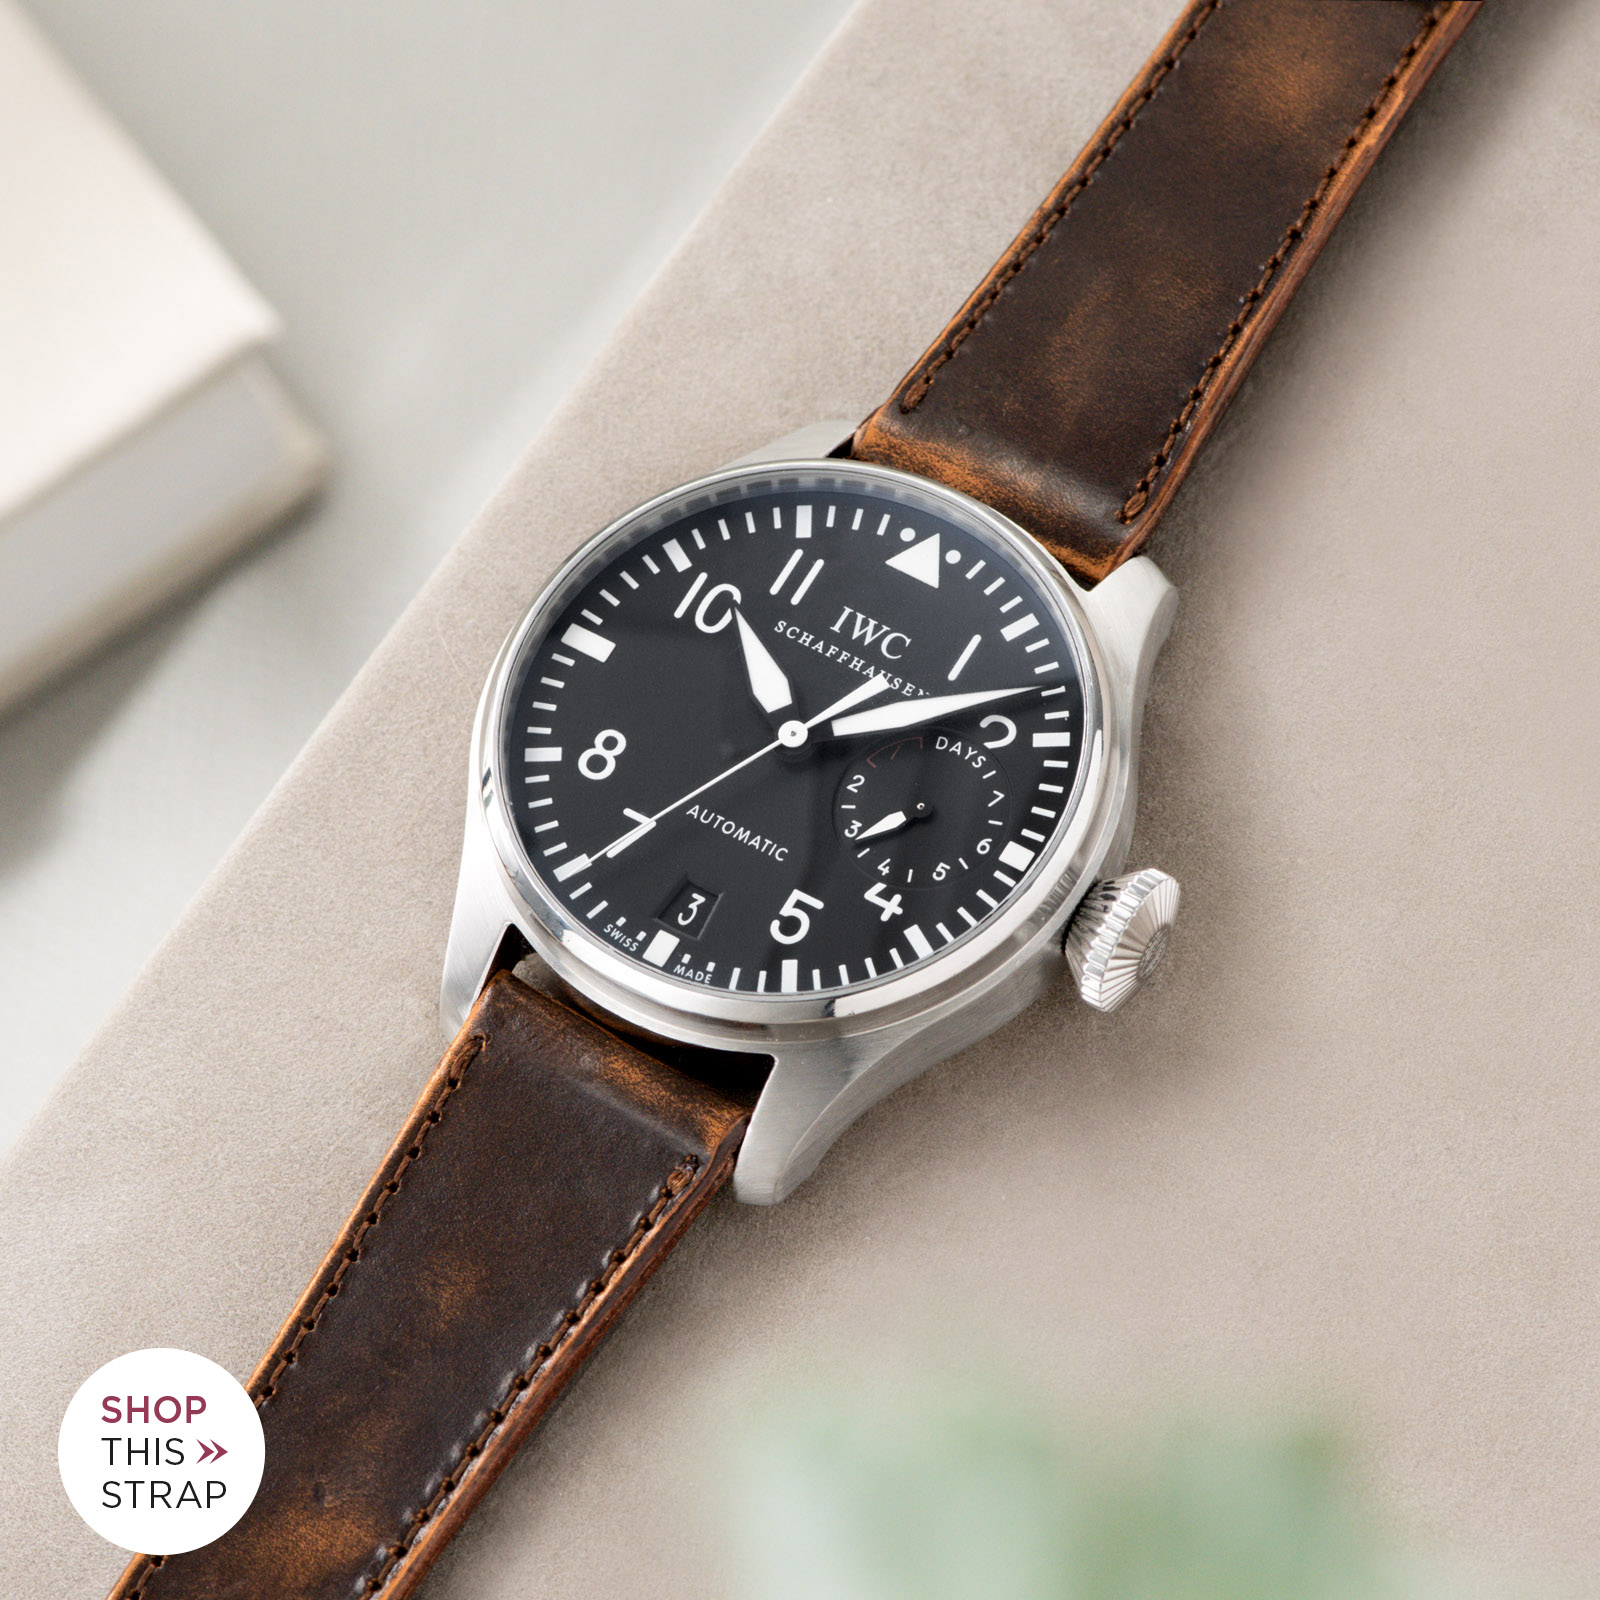 Bulang and Sons_Strap Guide_IWC Big Pilot ref IW5004_Degrade Honey Brown Leather Watch Strap